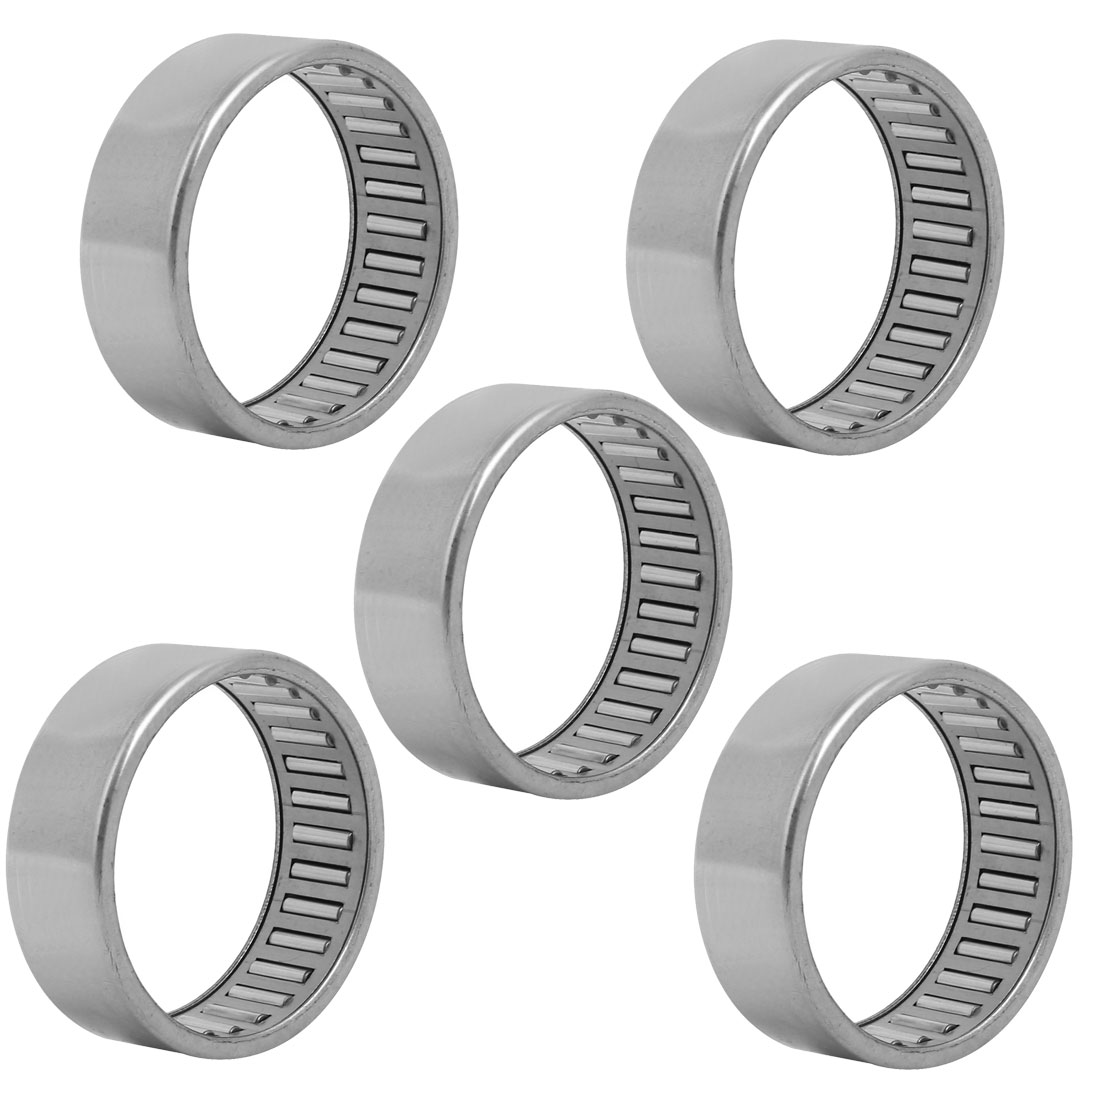 HK5020 58mmx50mm Drawn Cup Open End Needle Roller Bearing Silver Tone 5pcs